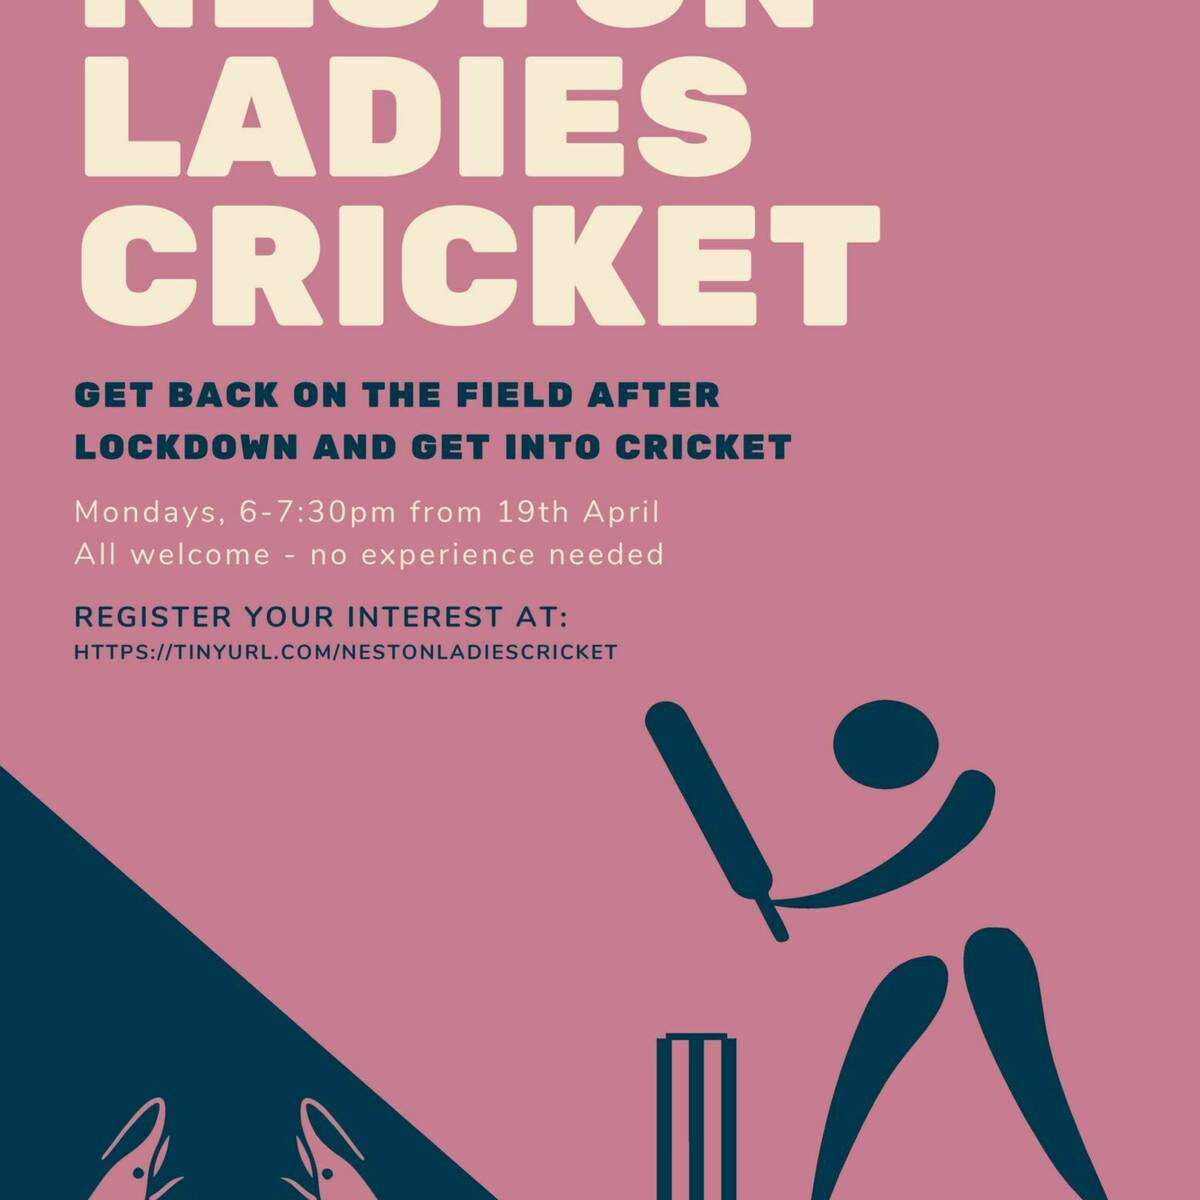 Ladies Cricket Poster page 001